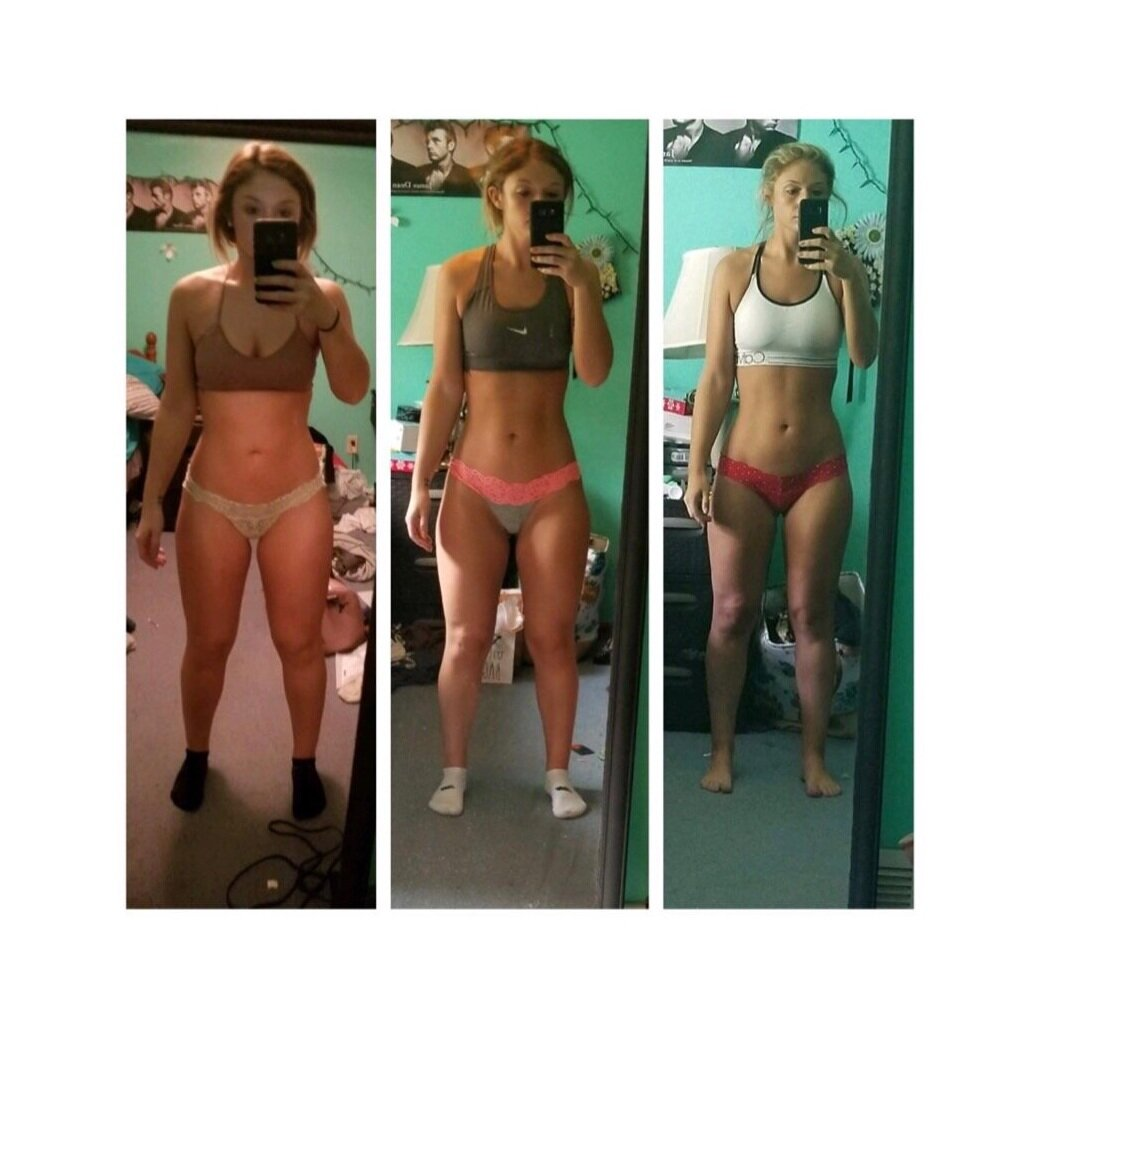 Ashlyn Sicliano - Before I started working with Jacklyn, I had tried every crash diet, every workout and different coaches. I had been involved with 2 coaches who did not know I existed and told me that my lack of progress had nothing to do with my macros, and was because I was negative and clearly not working hard. I felt restricted and controlled by food. I remember messaging Jacklyn and she made me realize that I was being bullied and I should work with her so I can see how a coach should be. Ever since this message I have been working with her, I am even going on my 4th challenge as a client. I no longer hate food, I am able to form a lifestyle where I still enjoy what I want and yet don't have to enter every single bite into MyFitnessPal. She has completely changed my relationship with food and the gym and I have never felt more supported. I am the most confident and strong that I have ever been and I owe it all to Jacklyn and her programs.